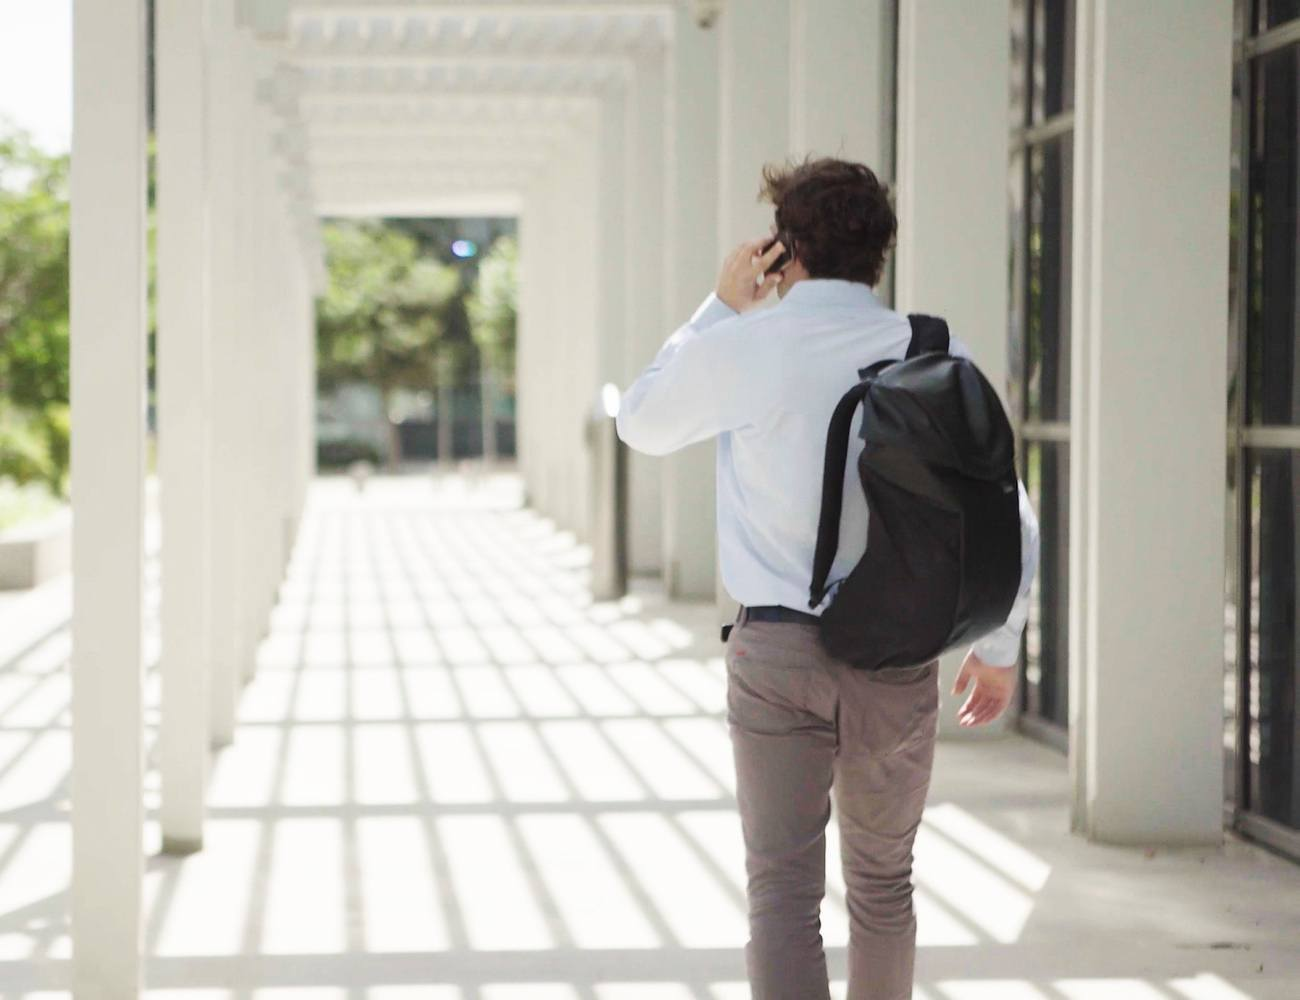 Joey+%26%238211%3B+The+Backpack+That+Gives+Your+Body+A+Break